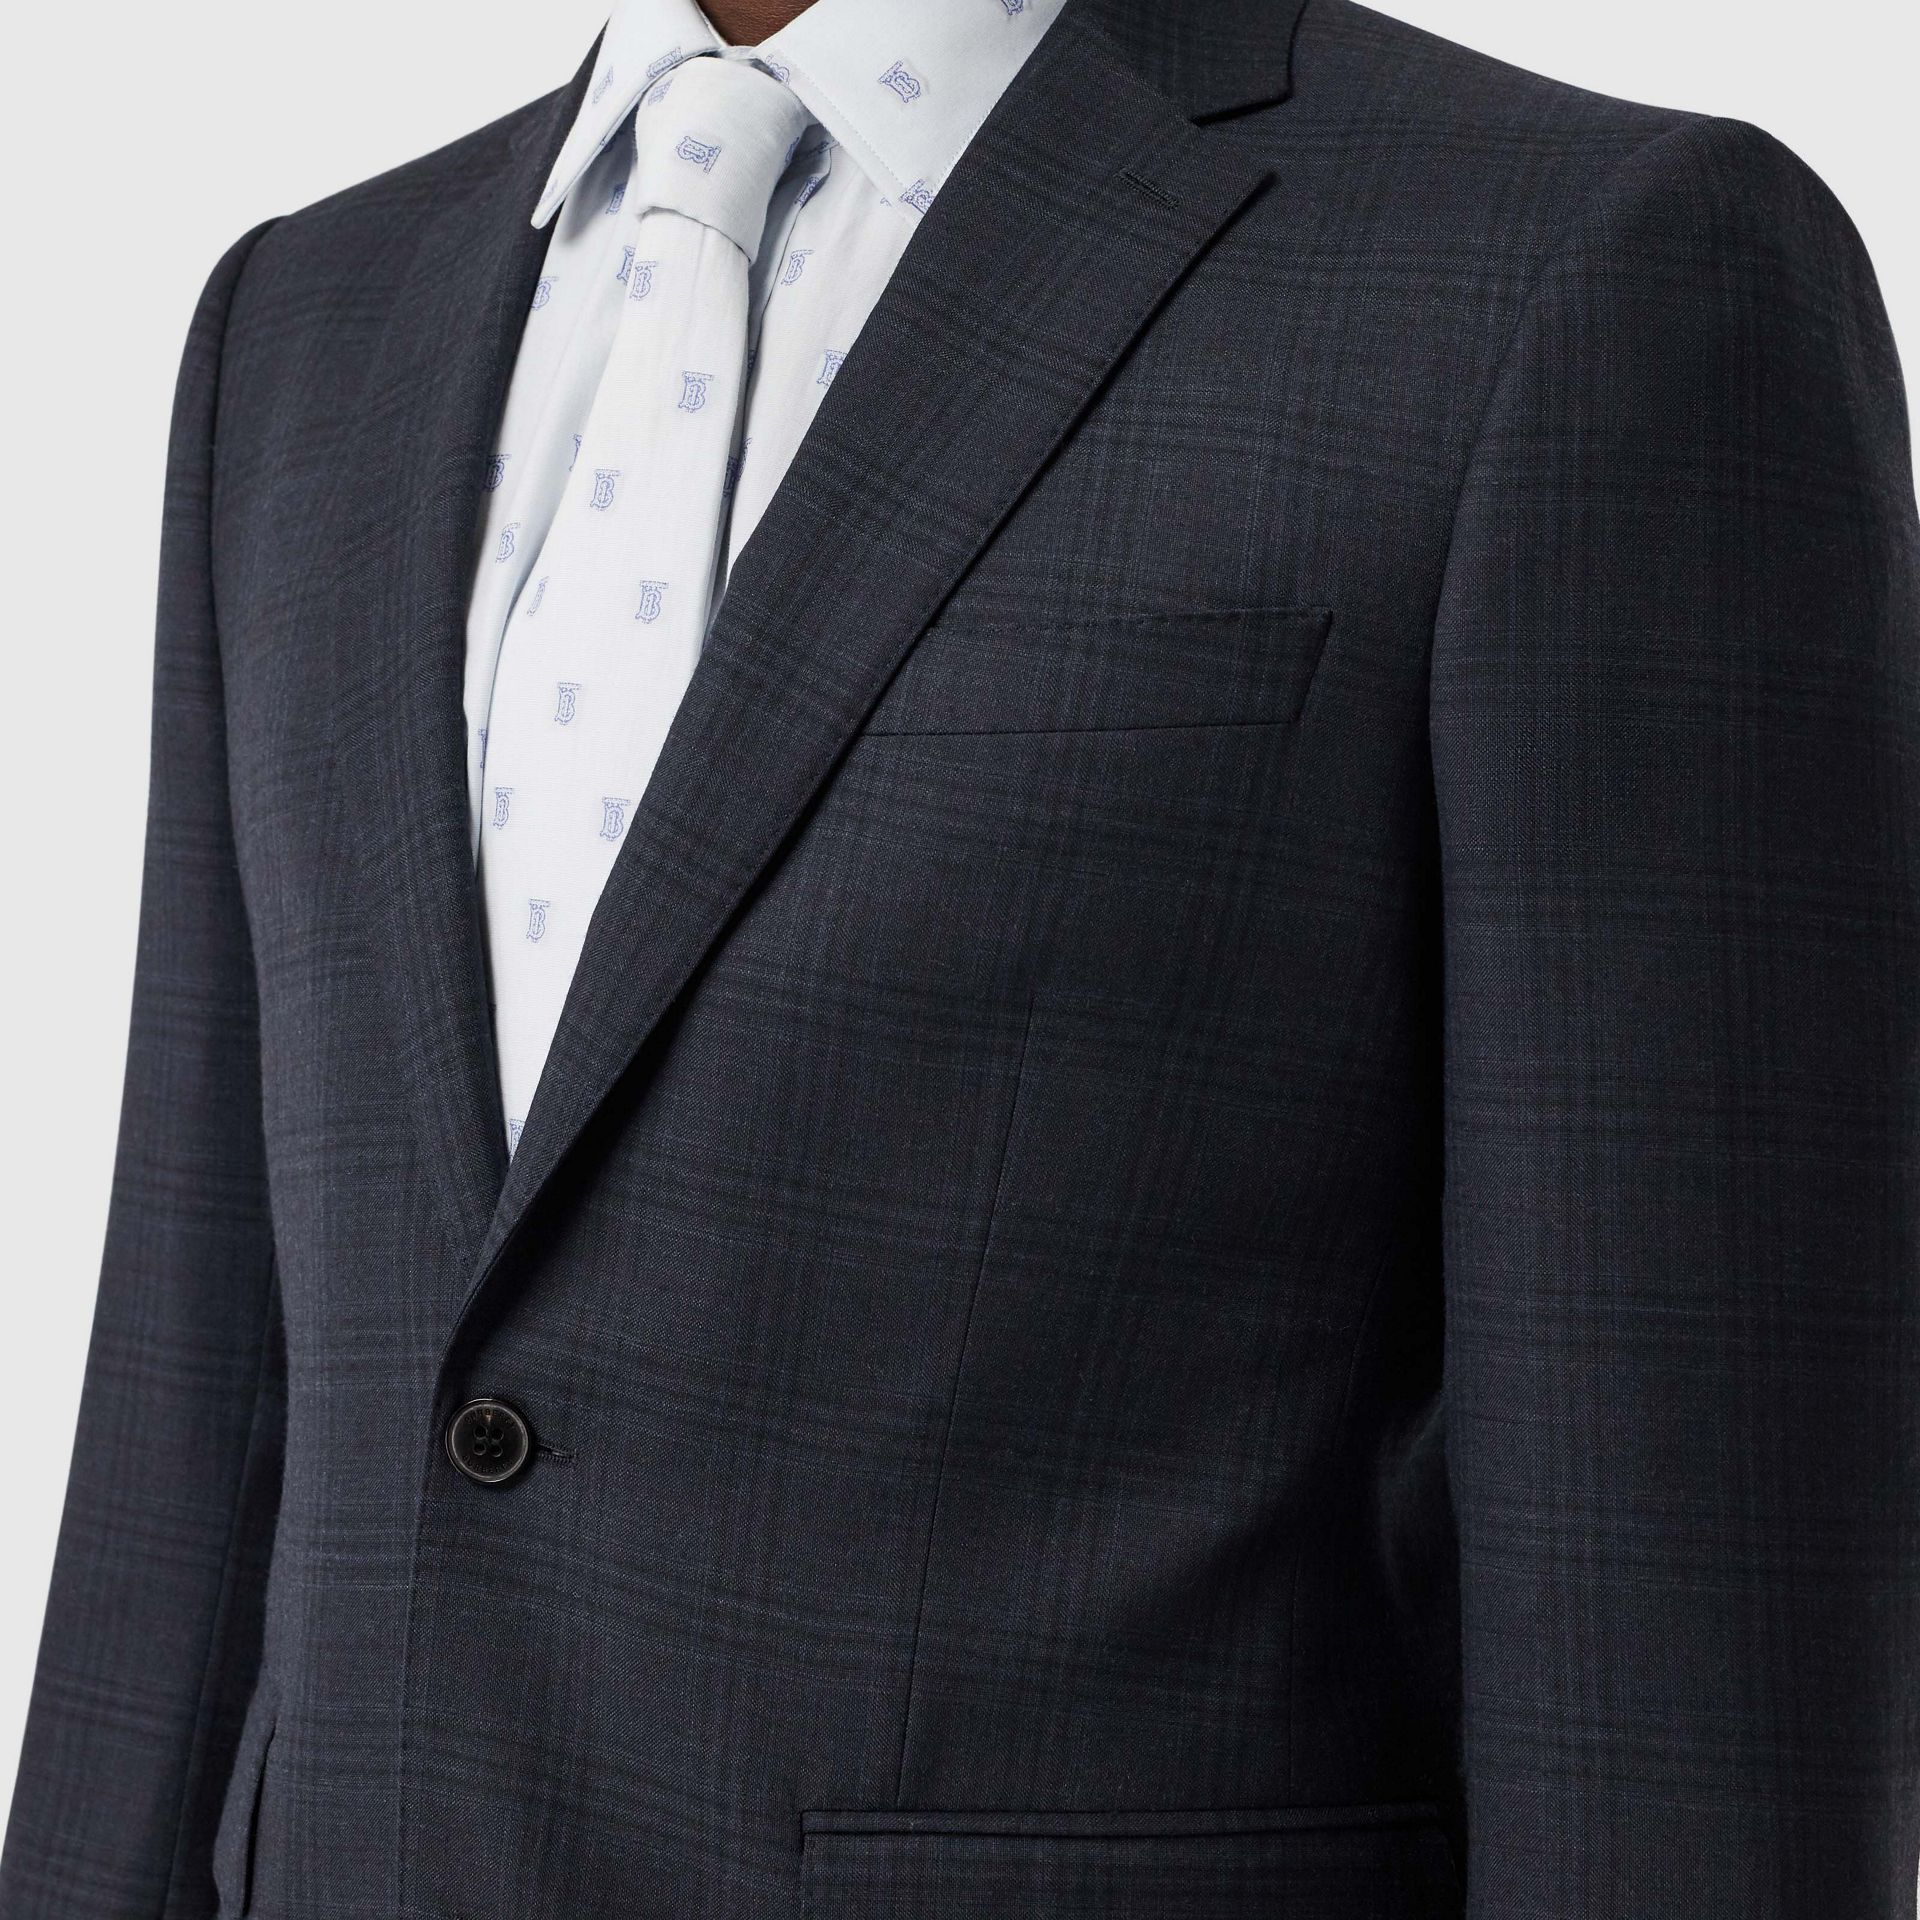 Classic Fit Windowpane Check Wool Suit in Uniform Blue - Men | Burberry - gallery image 1